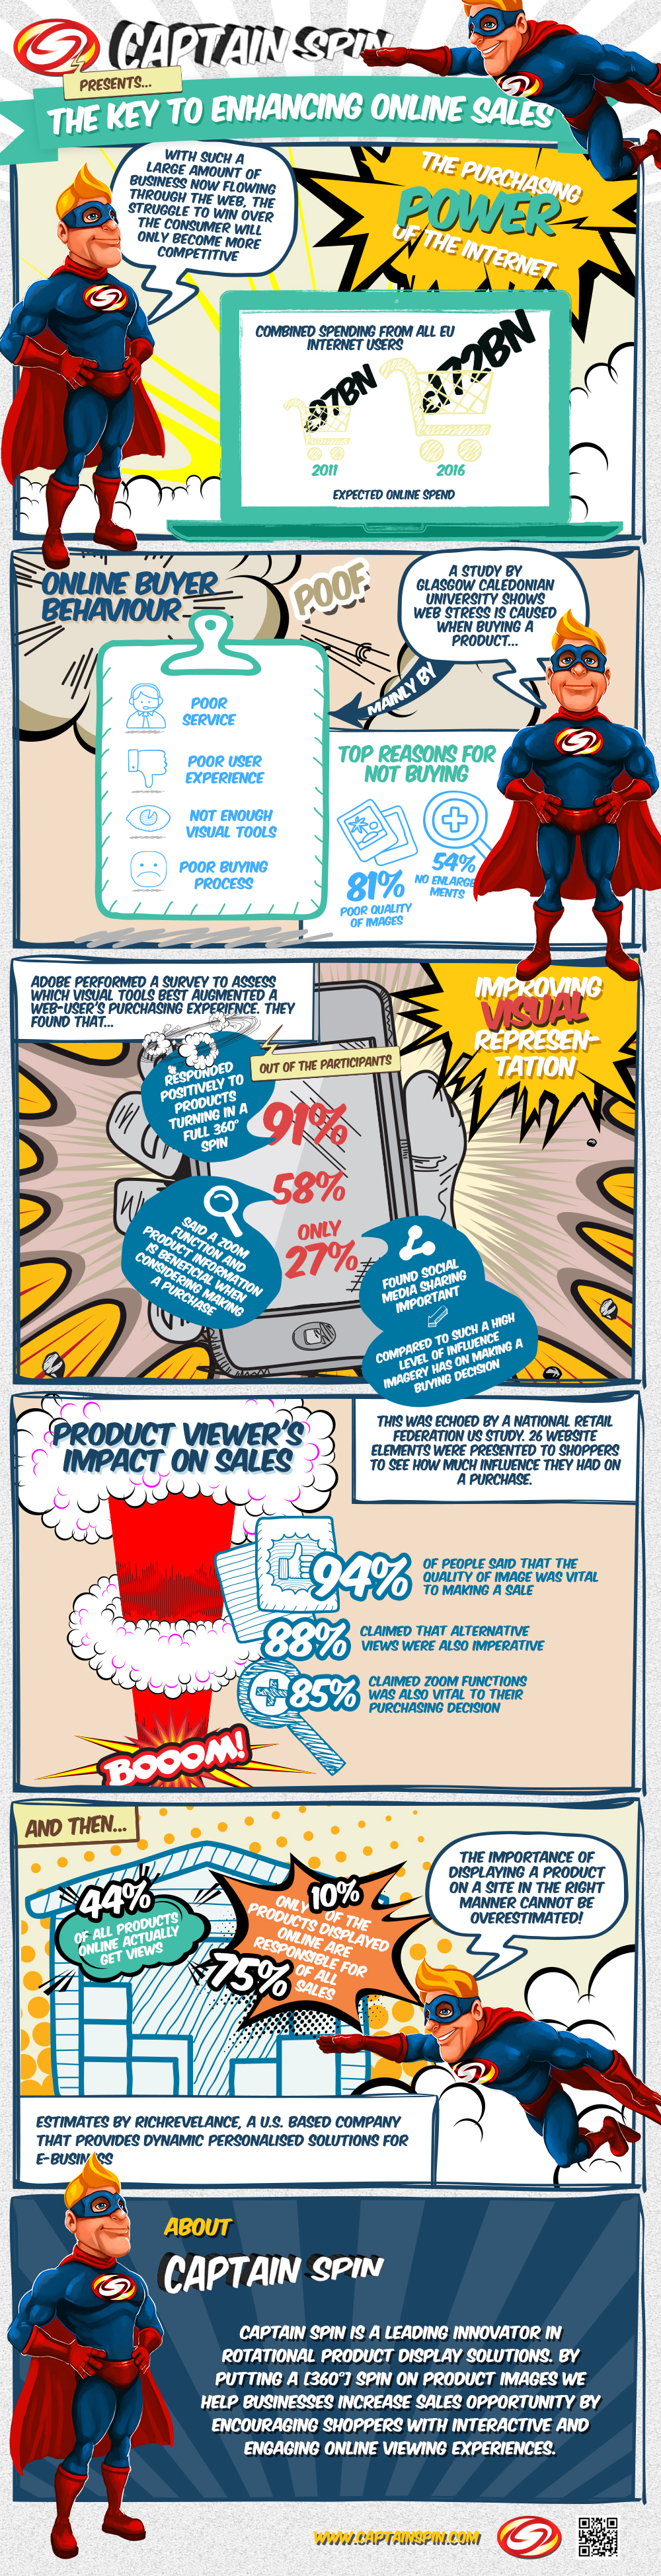 the-key-to-enhancing-online-sales_52167a7950a72